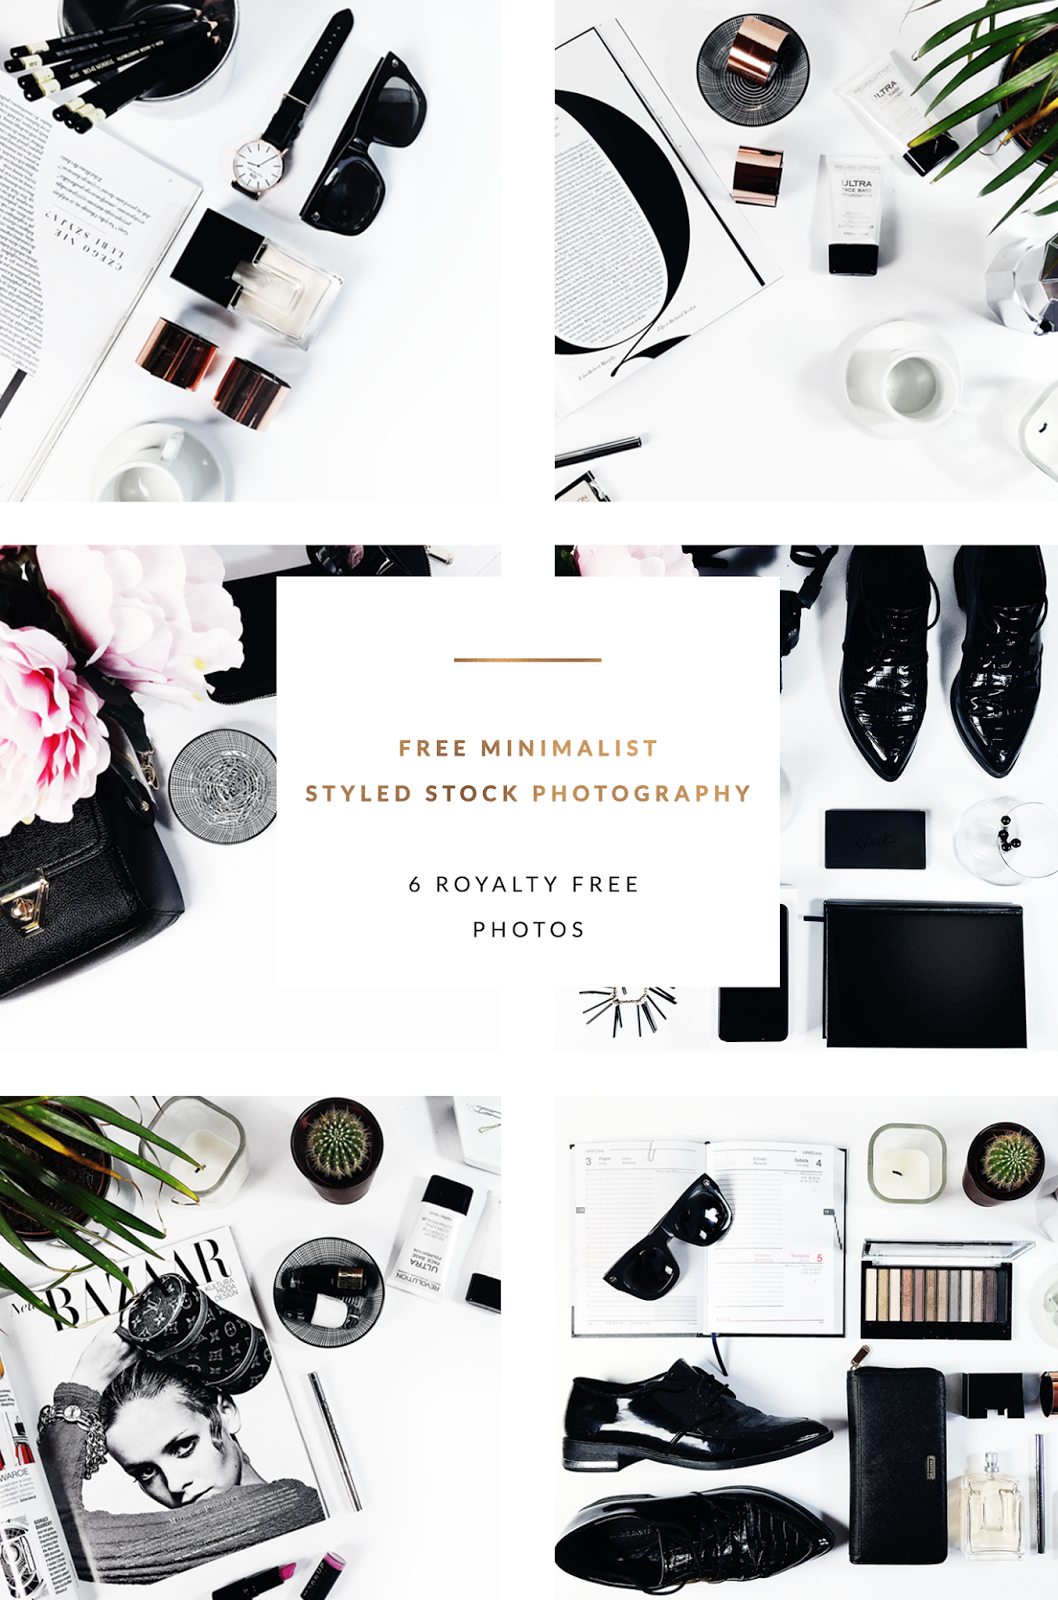 FREEBIES | Free Minimalist Styled Stock Photography | Darmowe Stylowe Zdjęcia Stockowe - Minimalizm Gold and Berry blog goldandberry